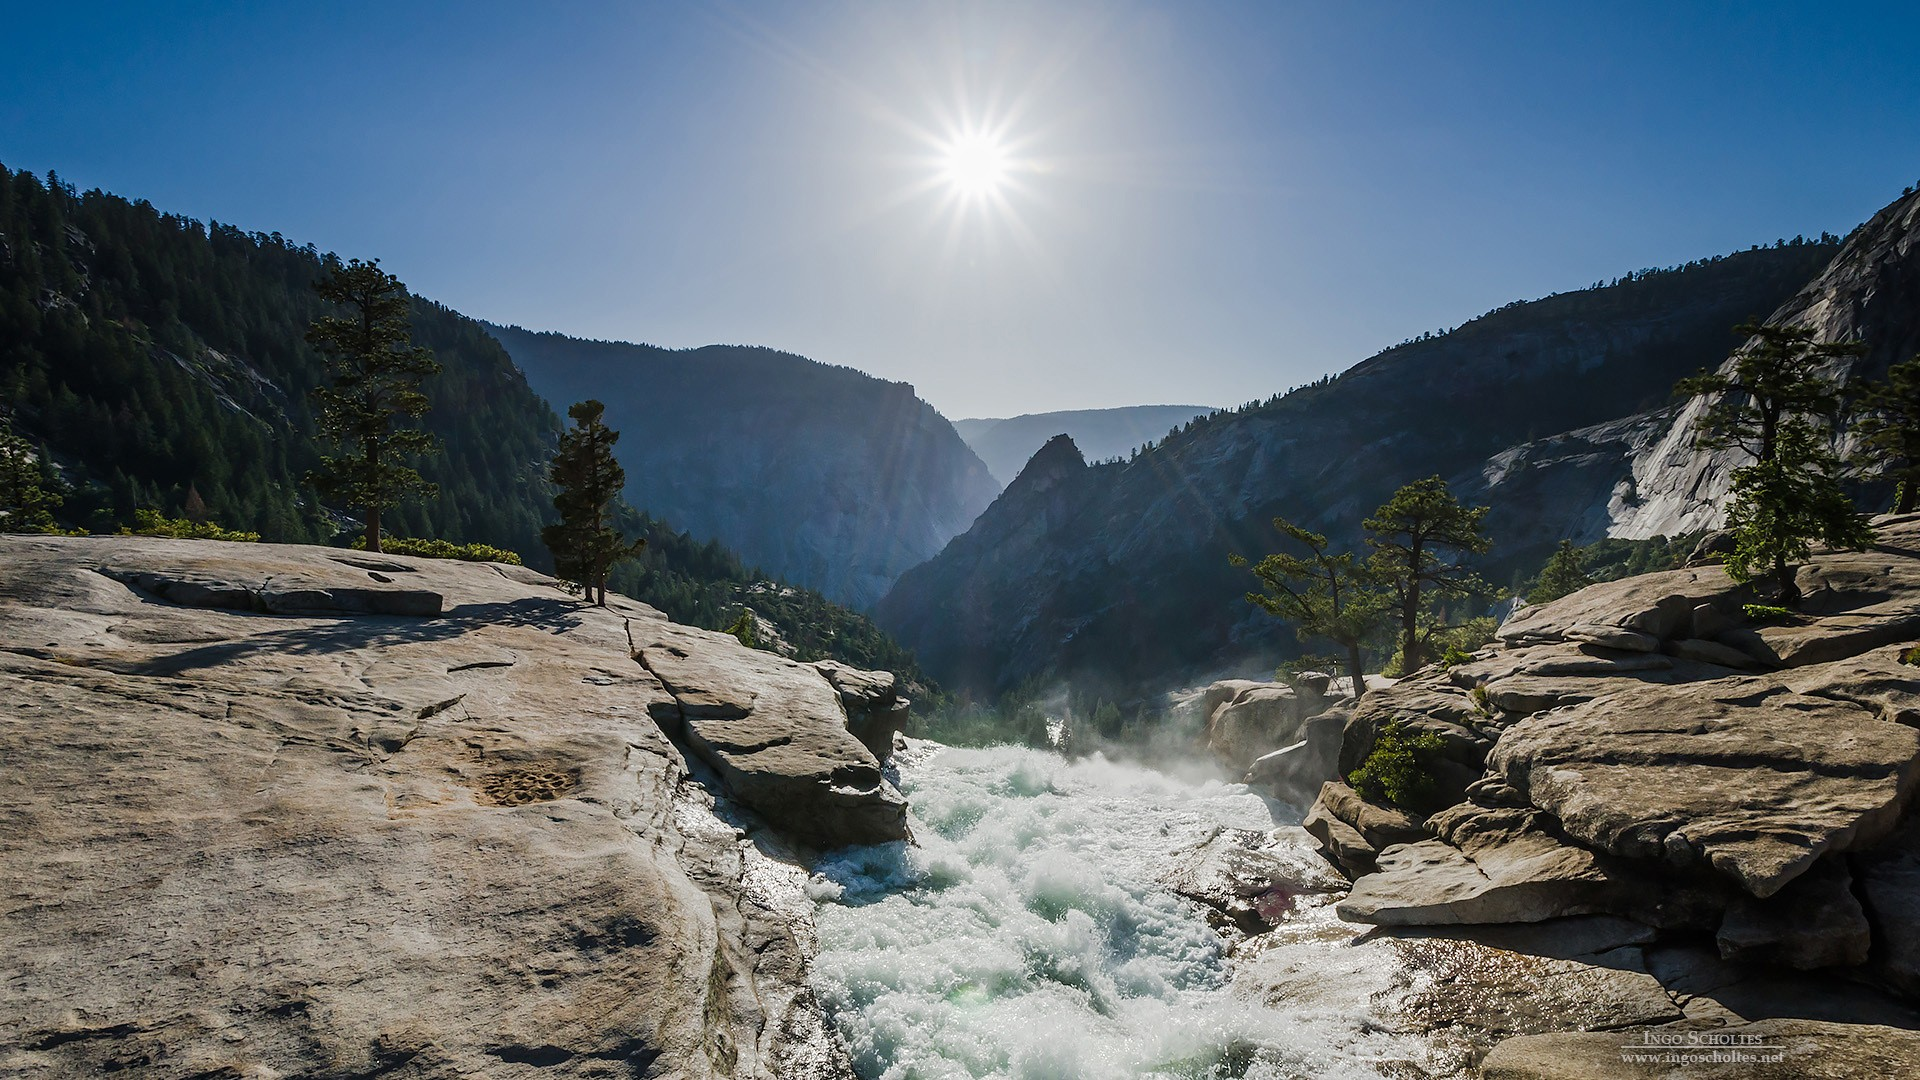 Fall Mountains Hd Wallpaper Pictures Nevada Fall Yosemite National Park Wallpapers Hd